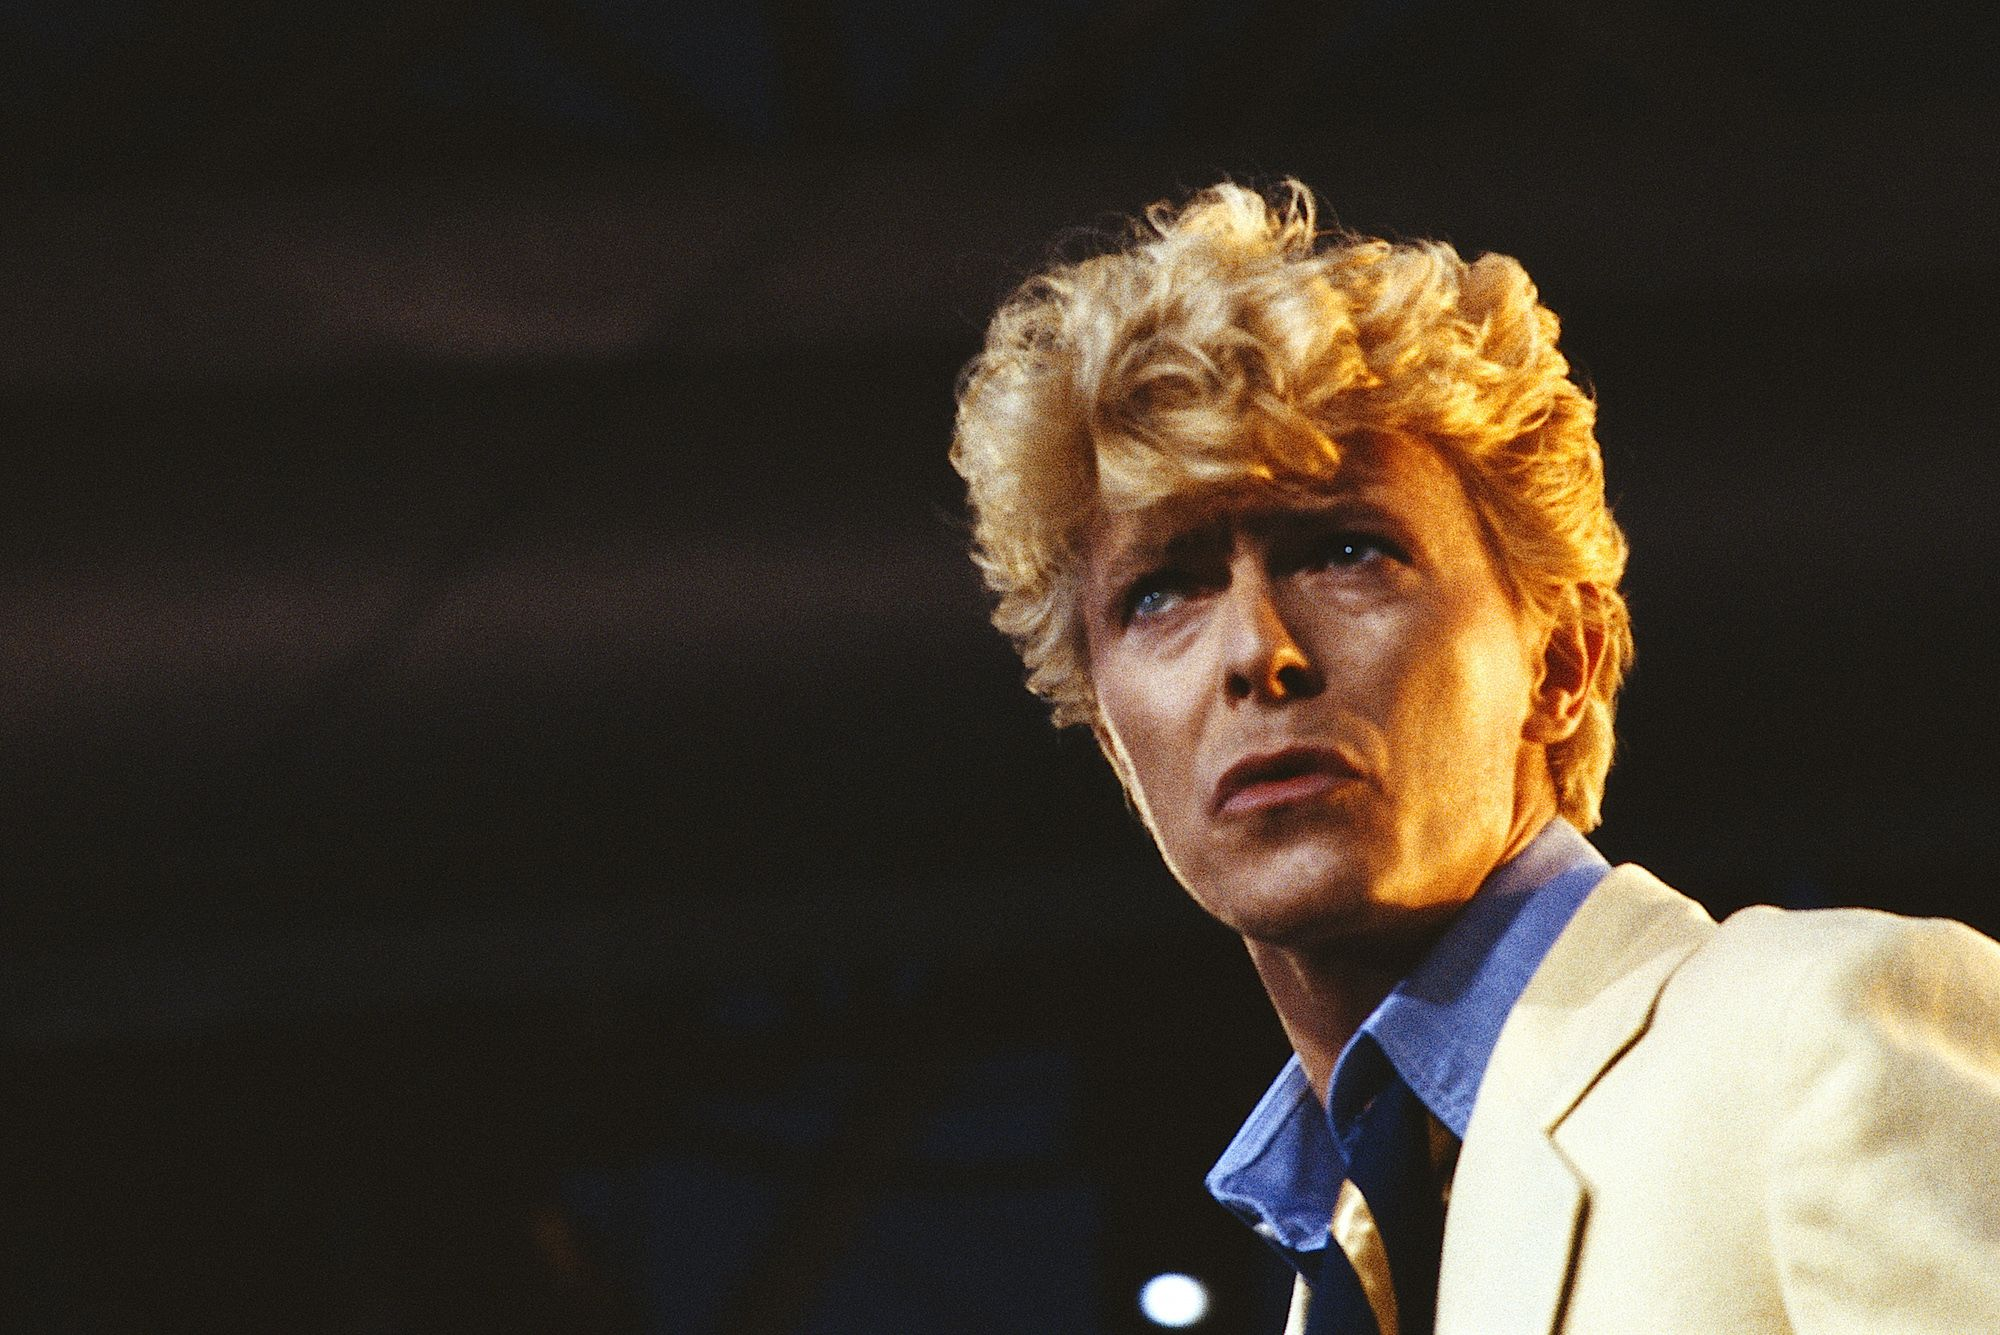 This Unreleased Demo of David Bowie's 'Let's Dance' Might Be More Timeless Than the Album Version